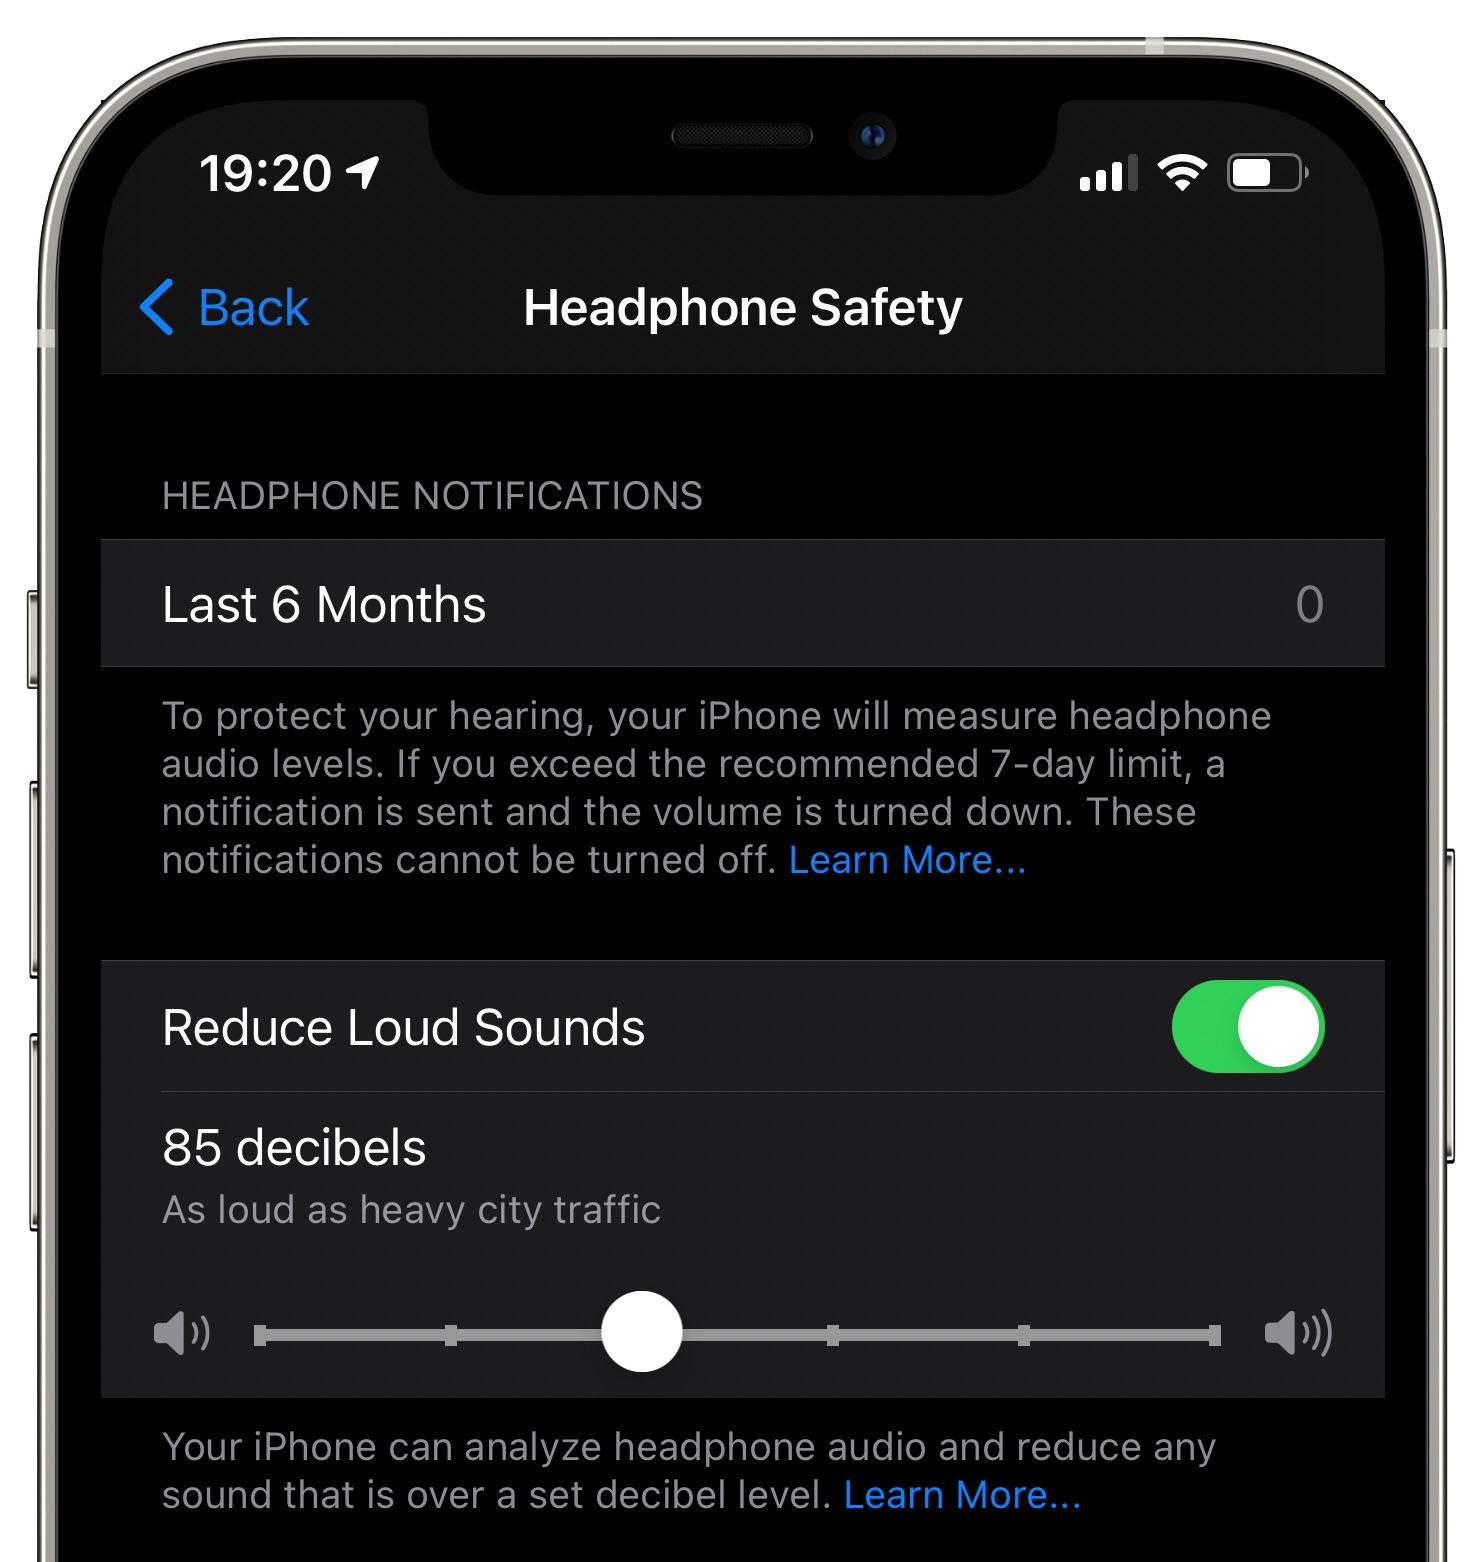 Headphone Safety settings on iPhone with the Reduce Loud Sounds option turned on